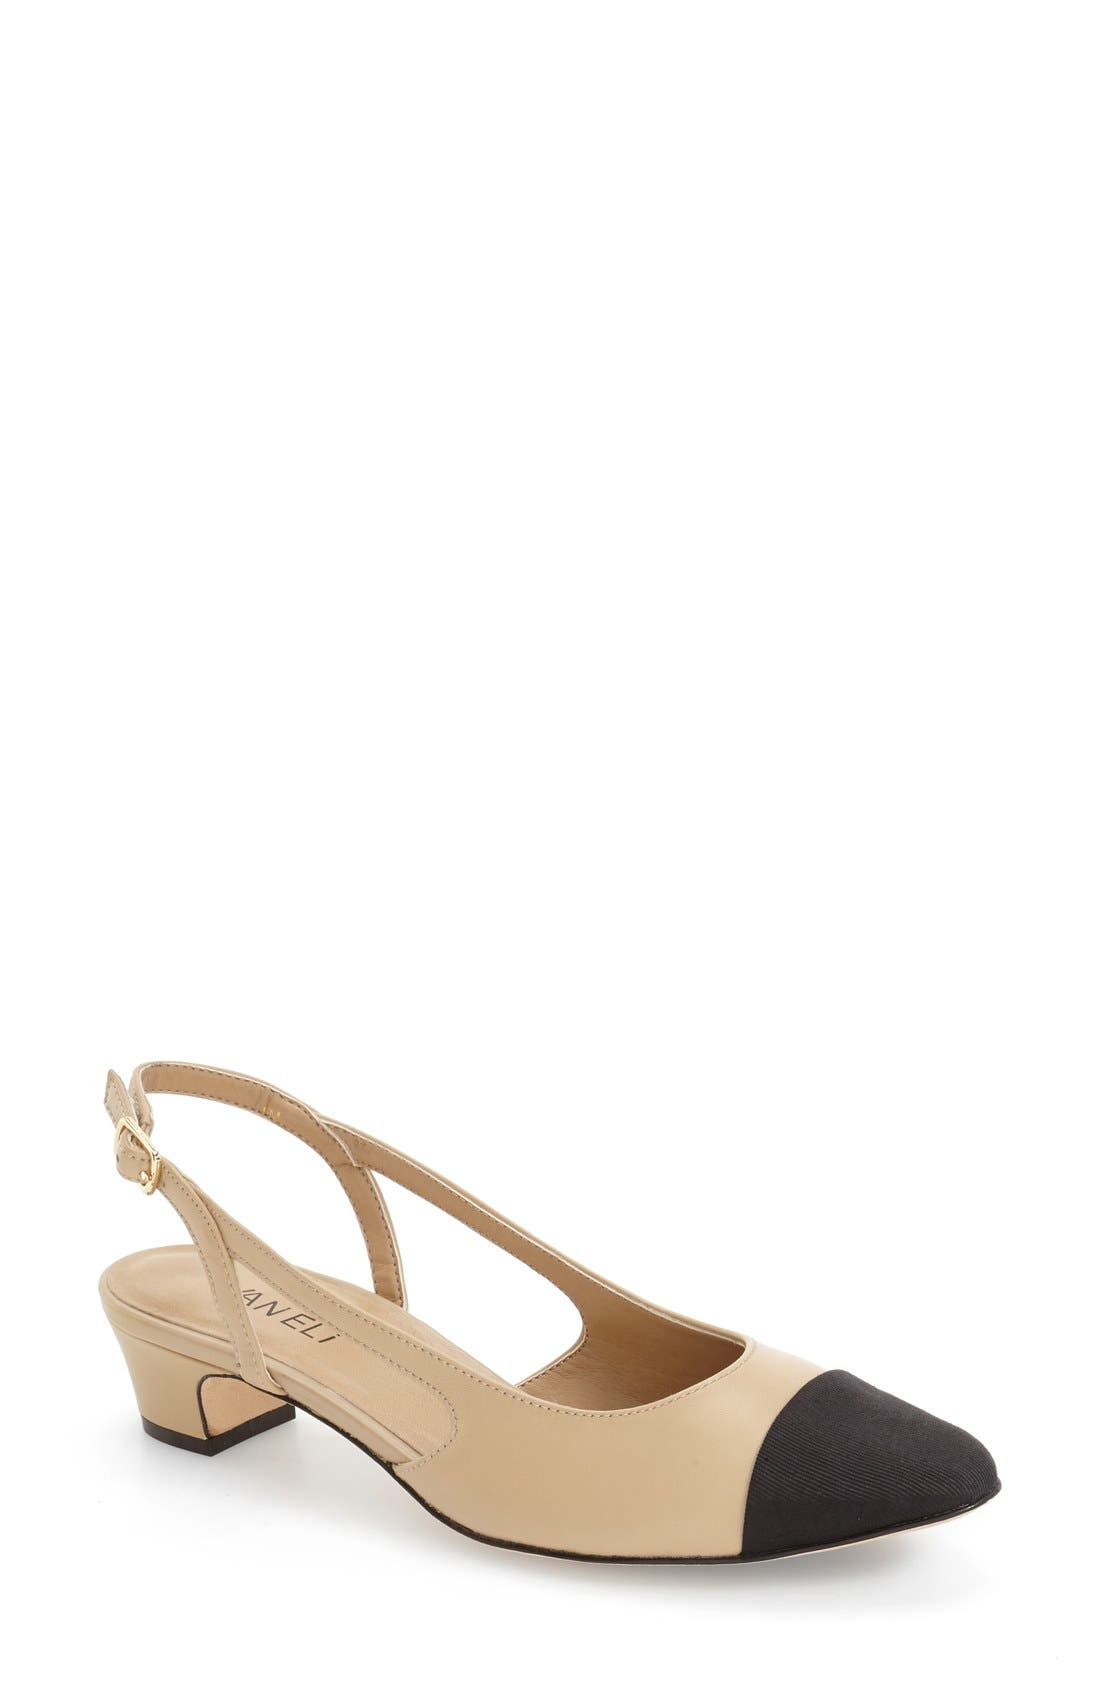 'Aliz' Slingback Pump,                         Main,                         color, PUDDING LEATHER